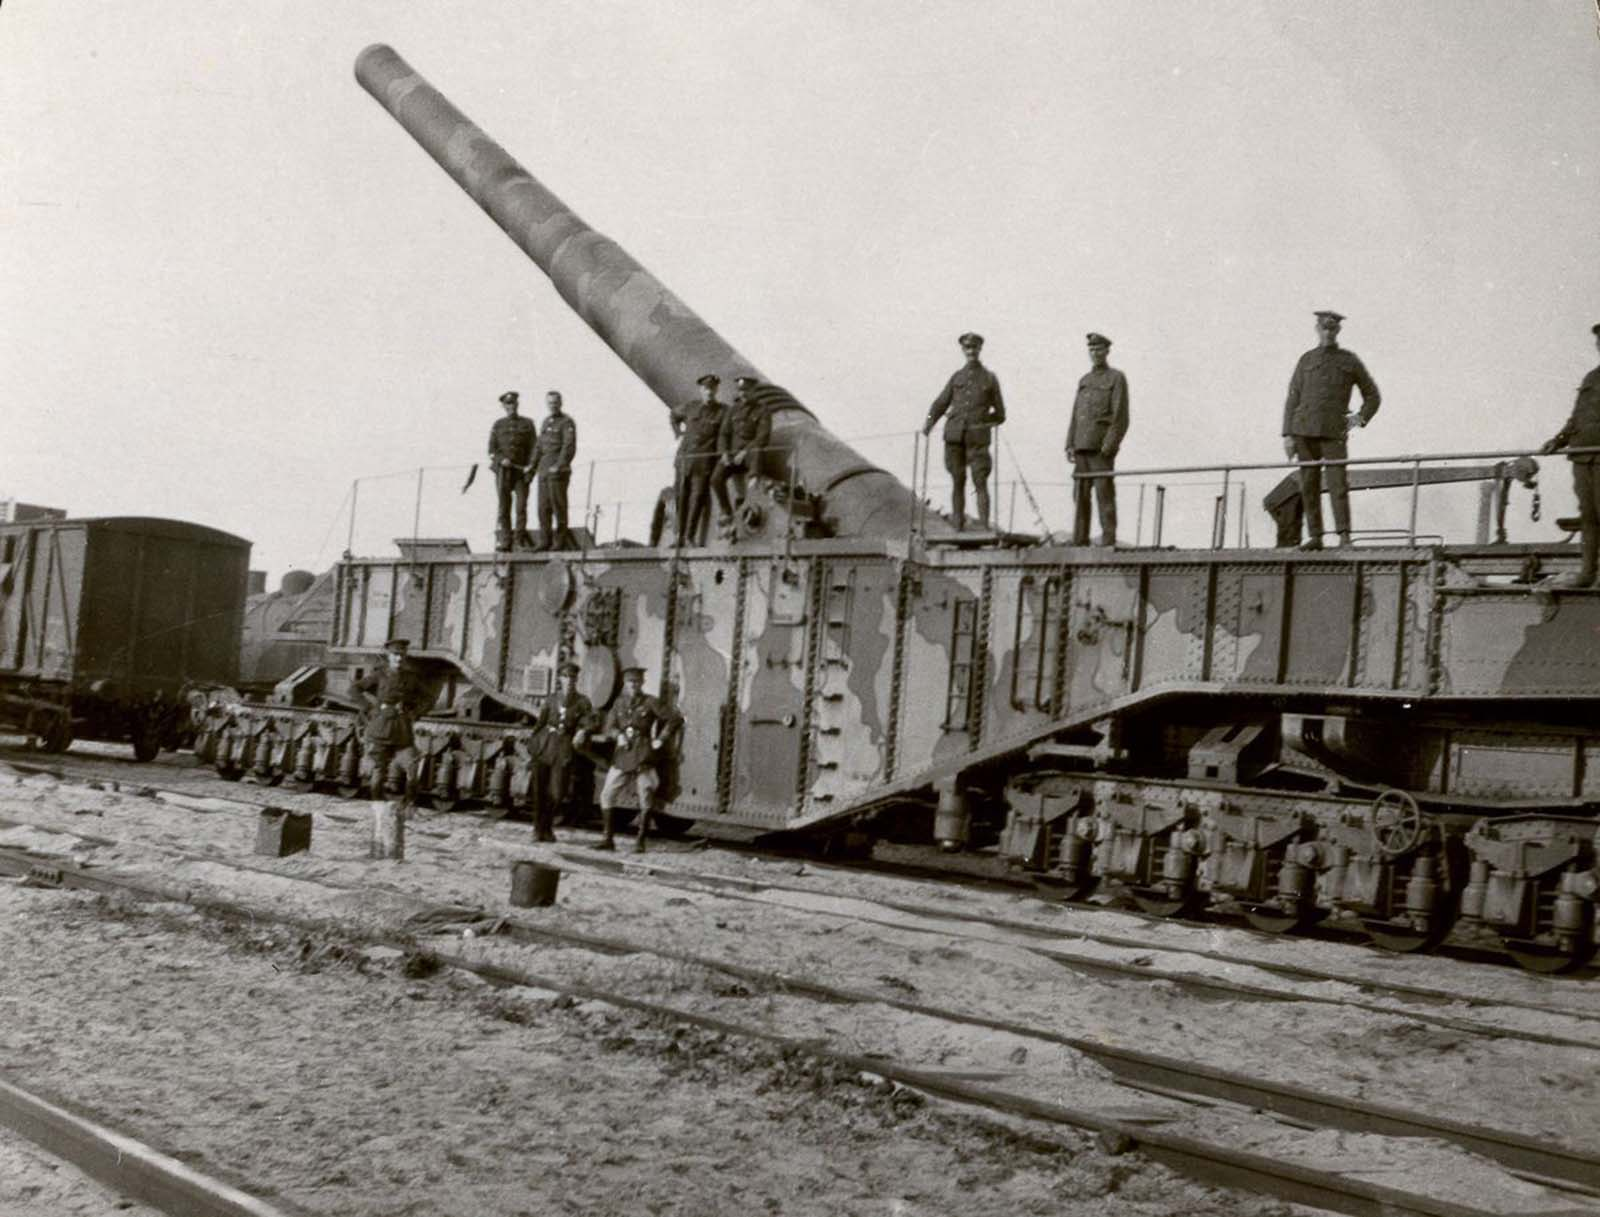 A 16-inch gun which was used on the Hindenburg Line in France. 1918.